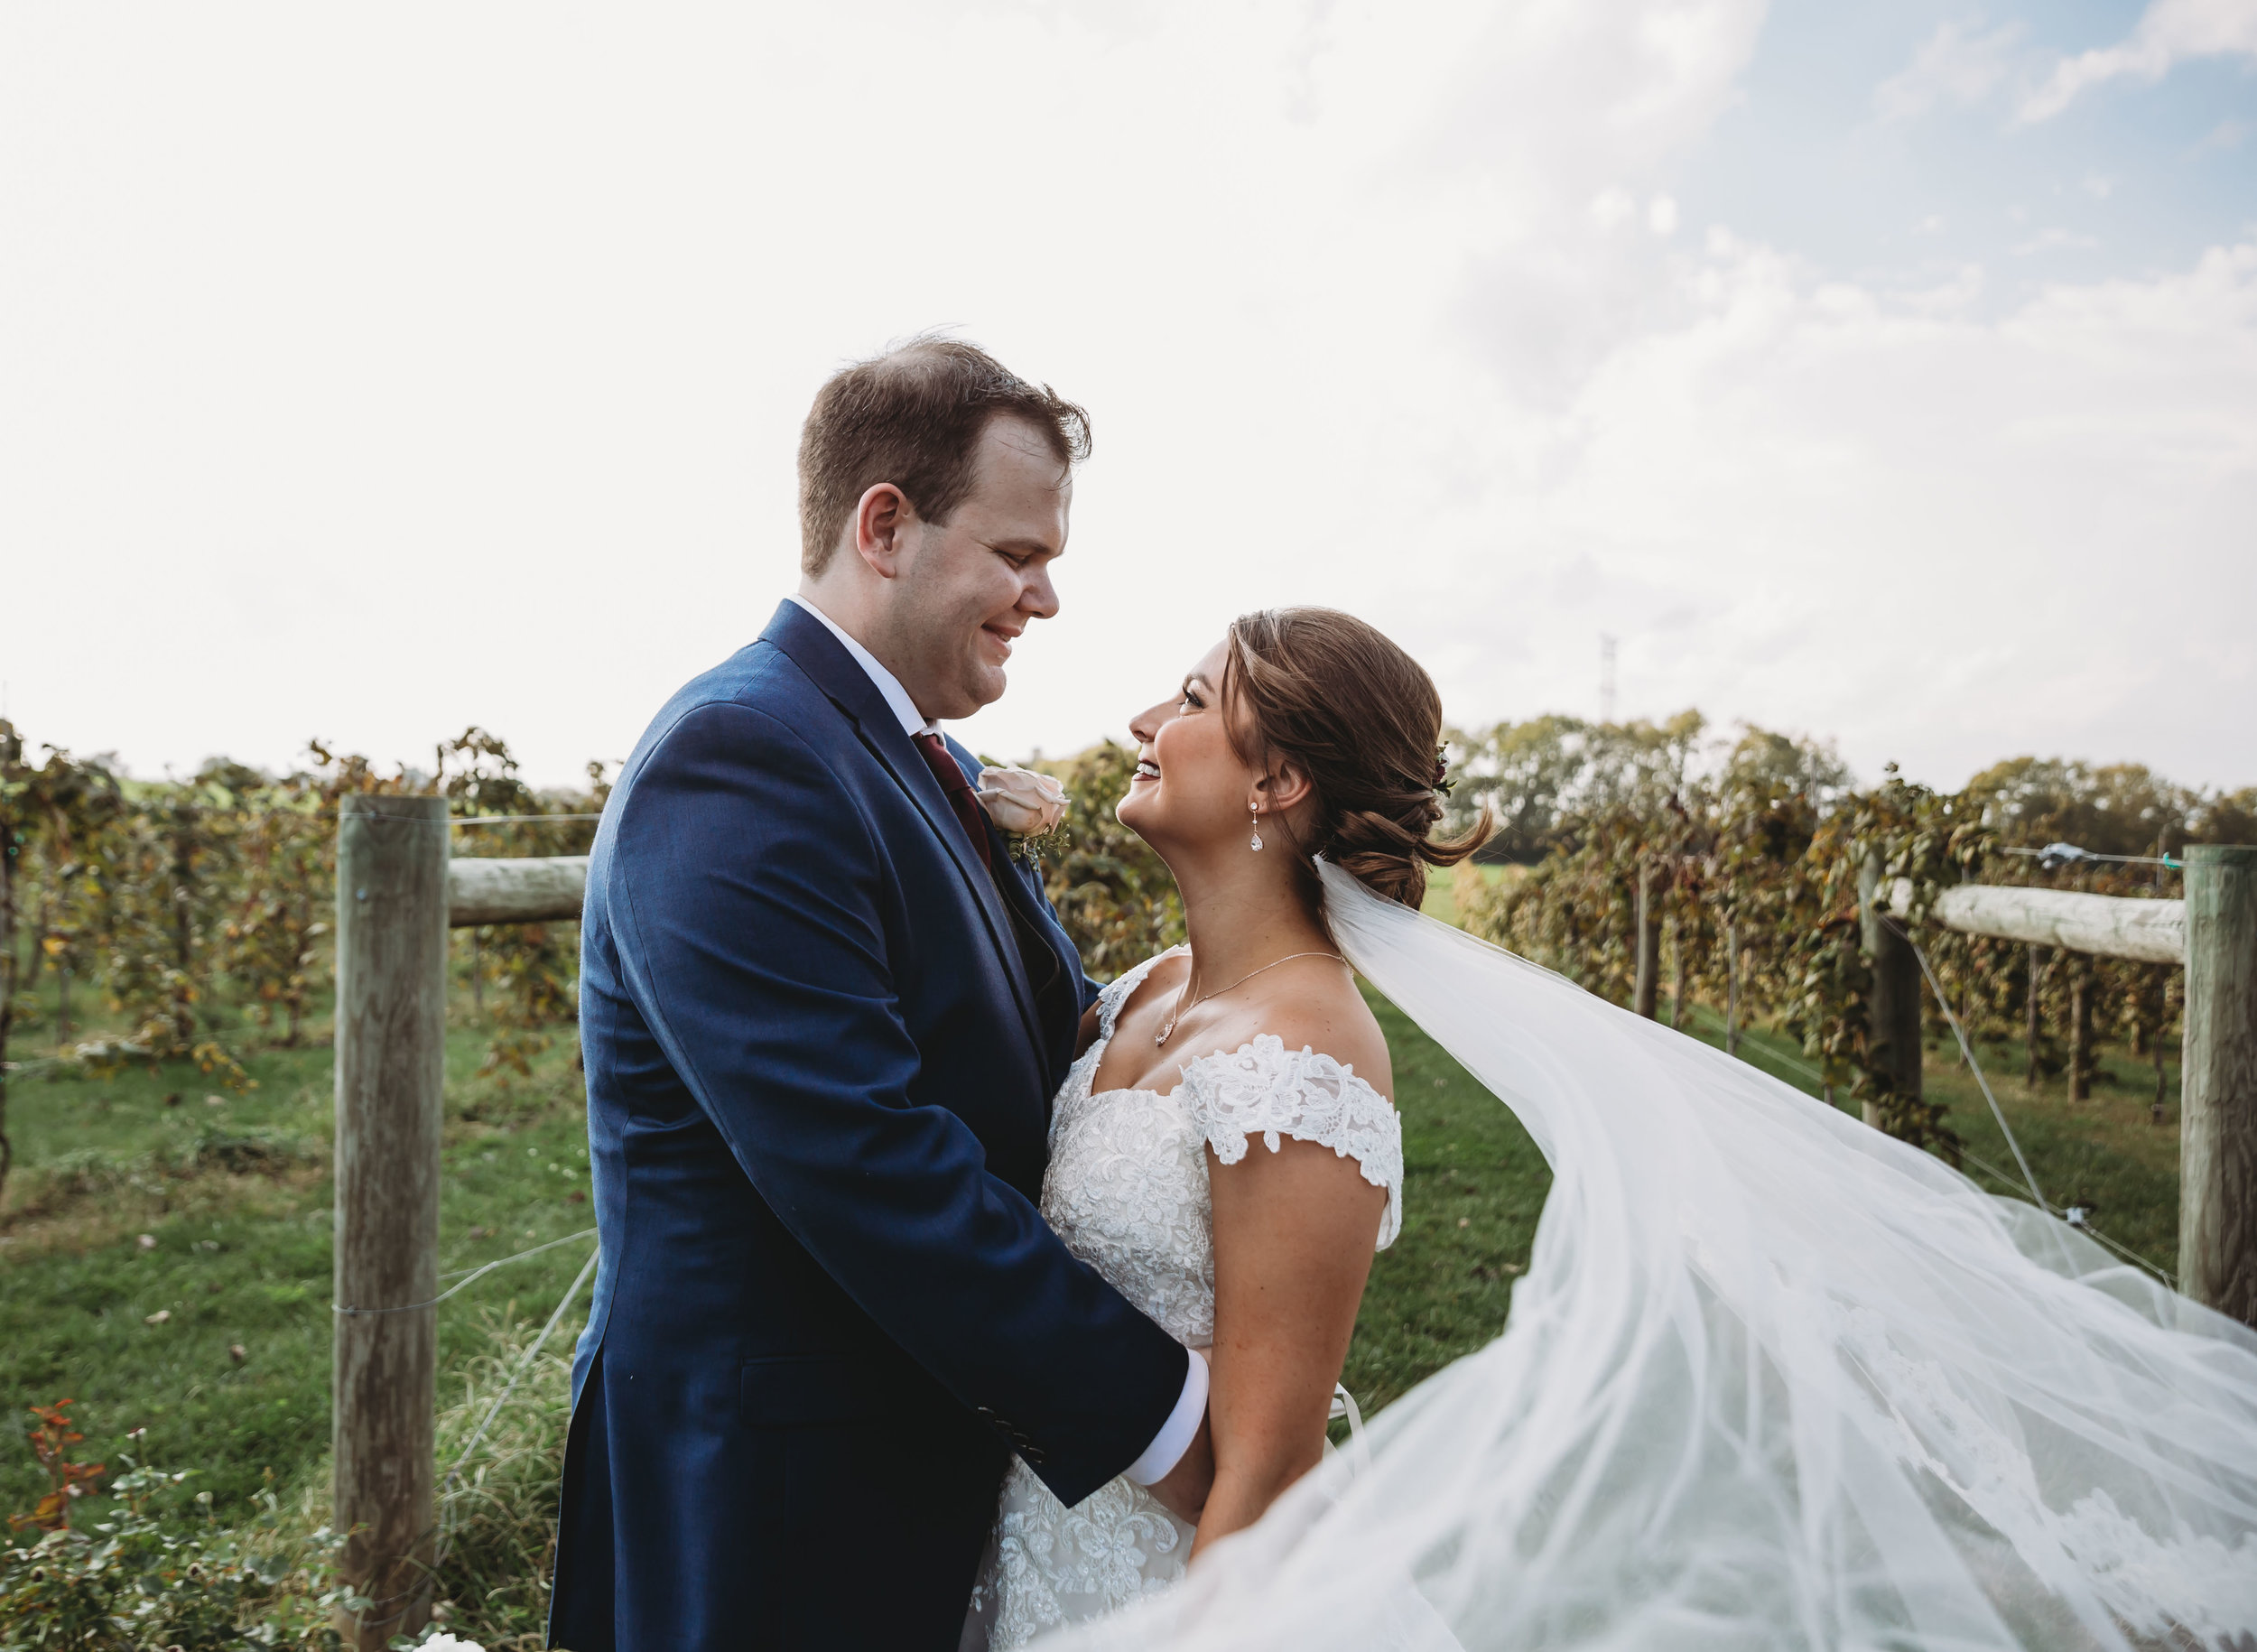 Jake + Ashlie - The Sycamore at Mallow Run | Bargersville, IN | October 2018